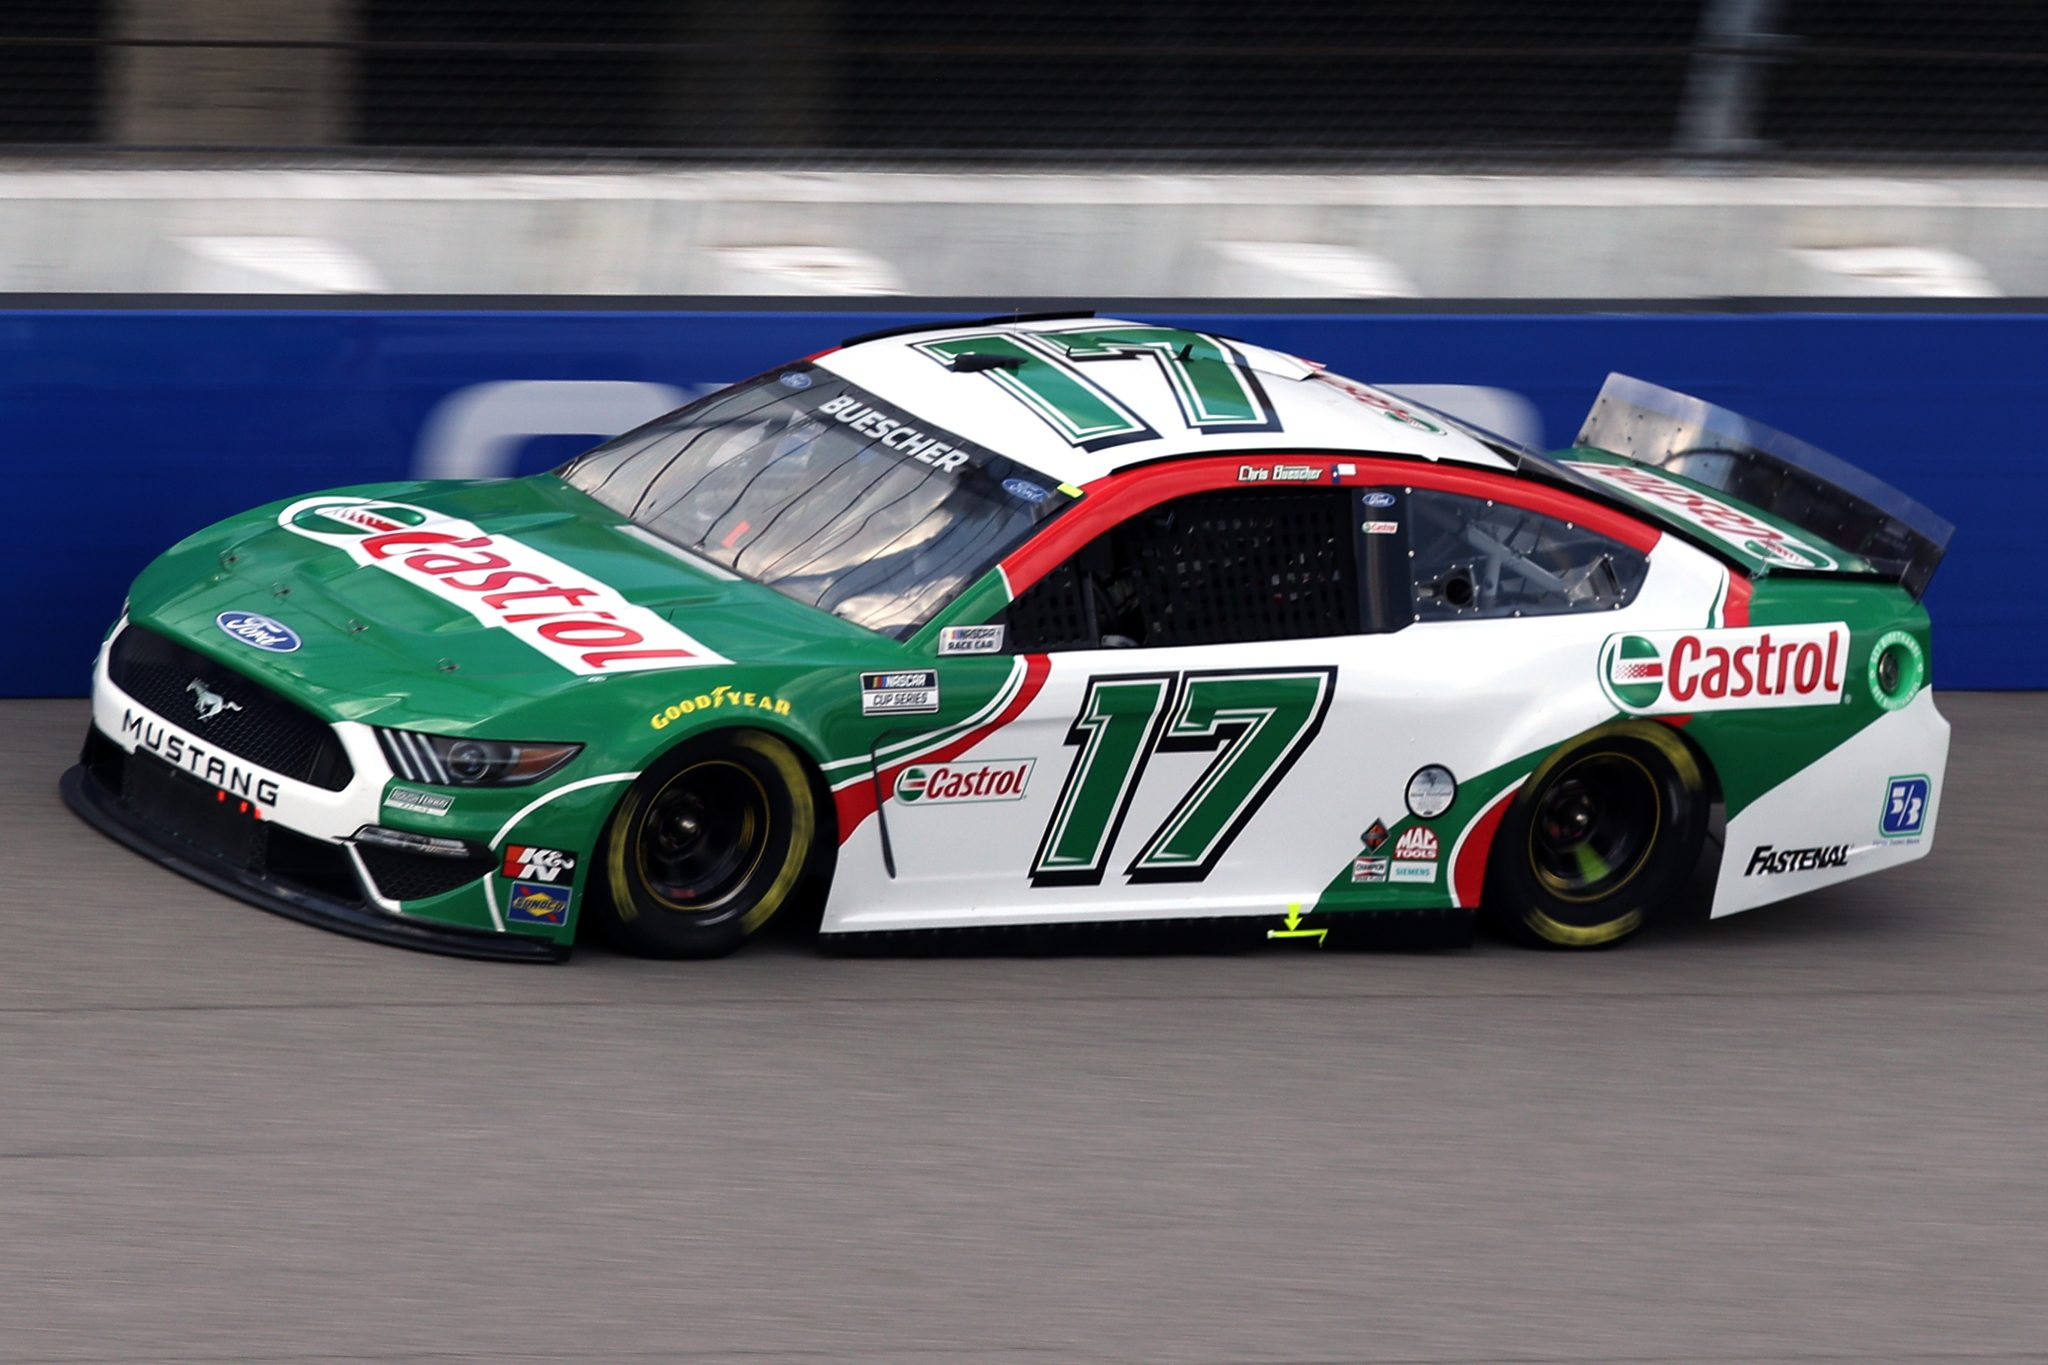 BROOKLYN, MICHIGAN - AUGUST 22: Chris Buescher, driver of the #17 Castrol Ford, drives during the NASCAR Cup Series FireKeepers Casino 400 at Michigan International Speedway on August 22, 2021 in Brooklyn, Michigan. (Photo by Sean Gardner/Getty Images) | Getty Images